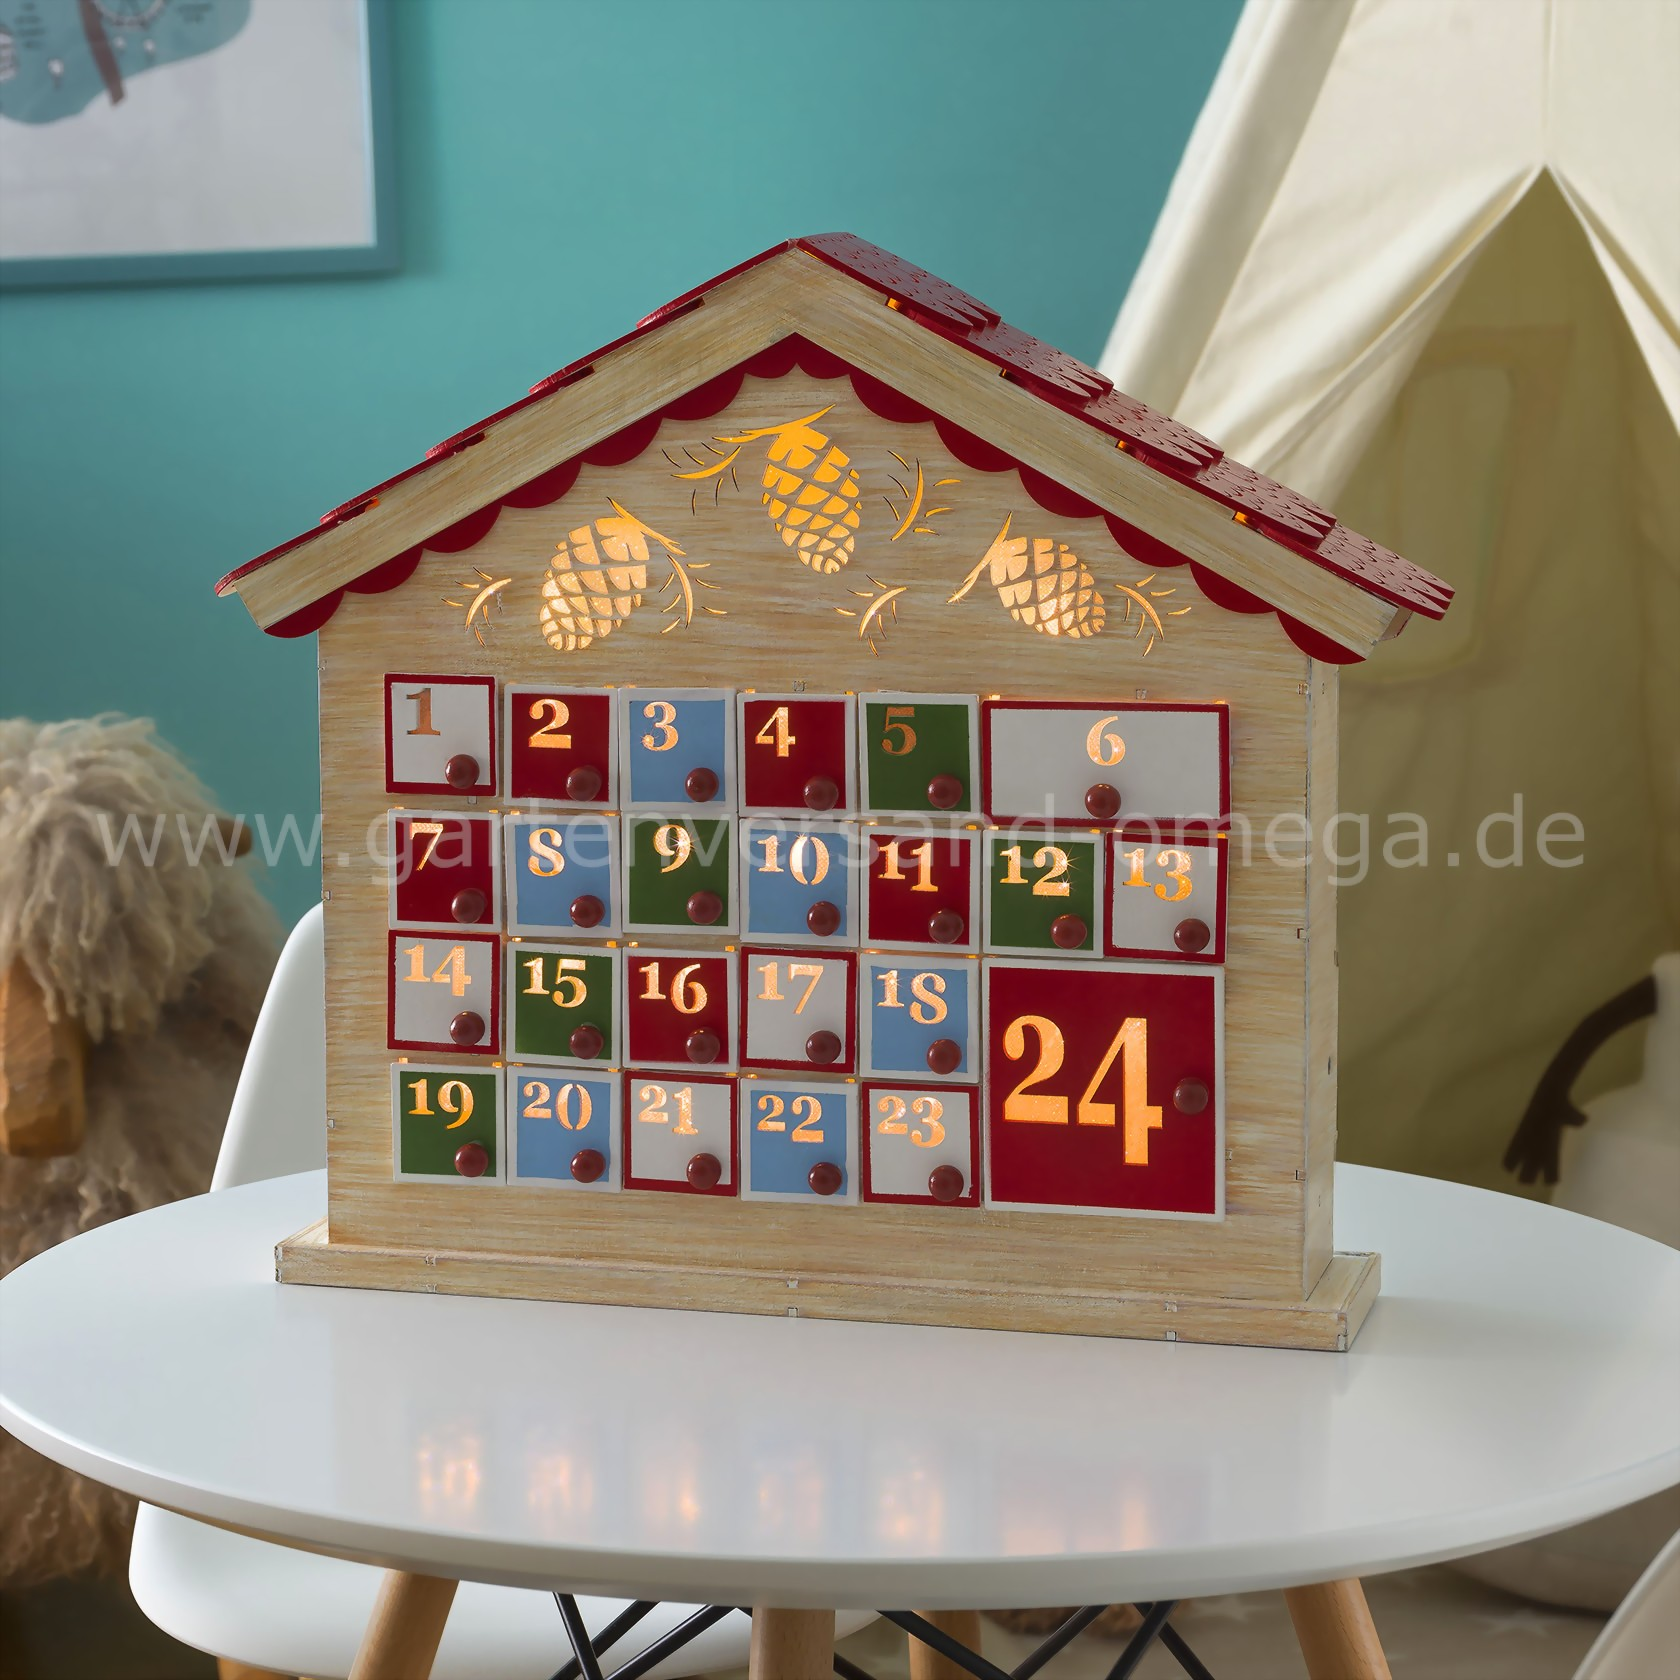 led holz adventskalender beleuchteter adventskalender aus holz mit 24 schubladen. Black Bedroom Furniture Sets. Home Design Ideas